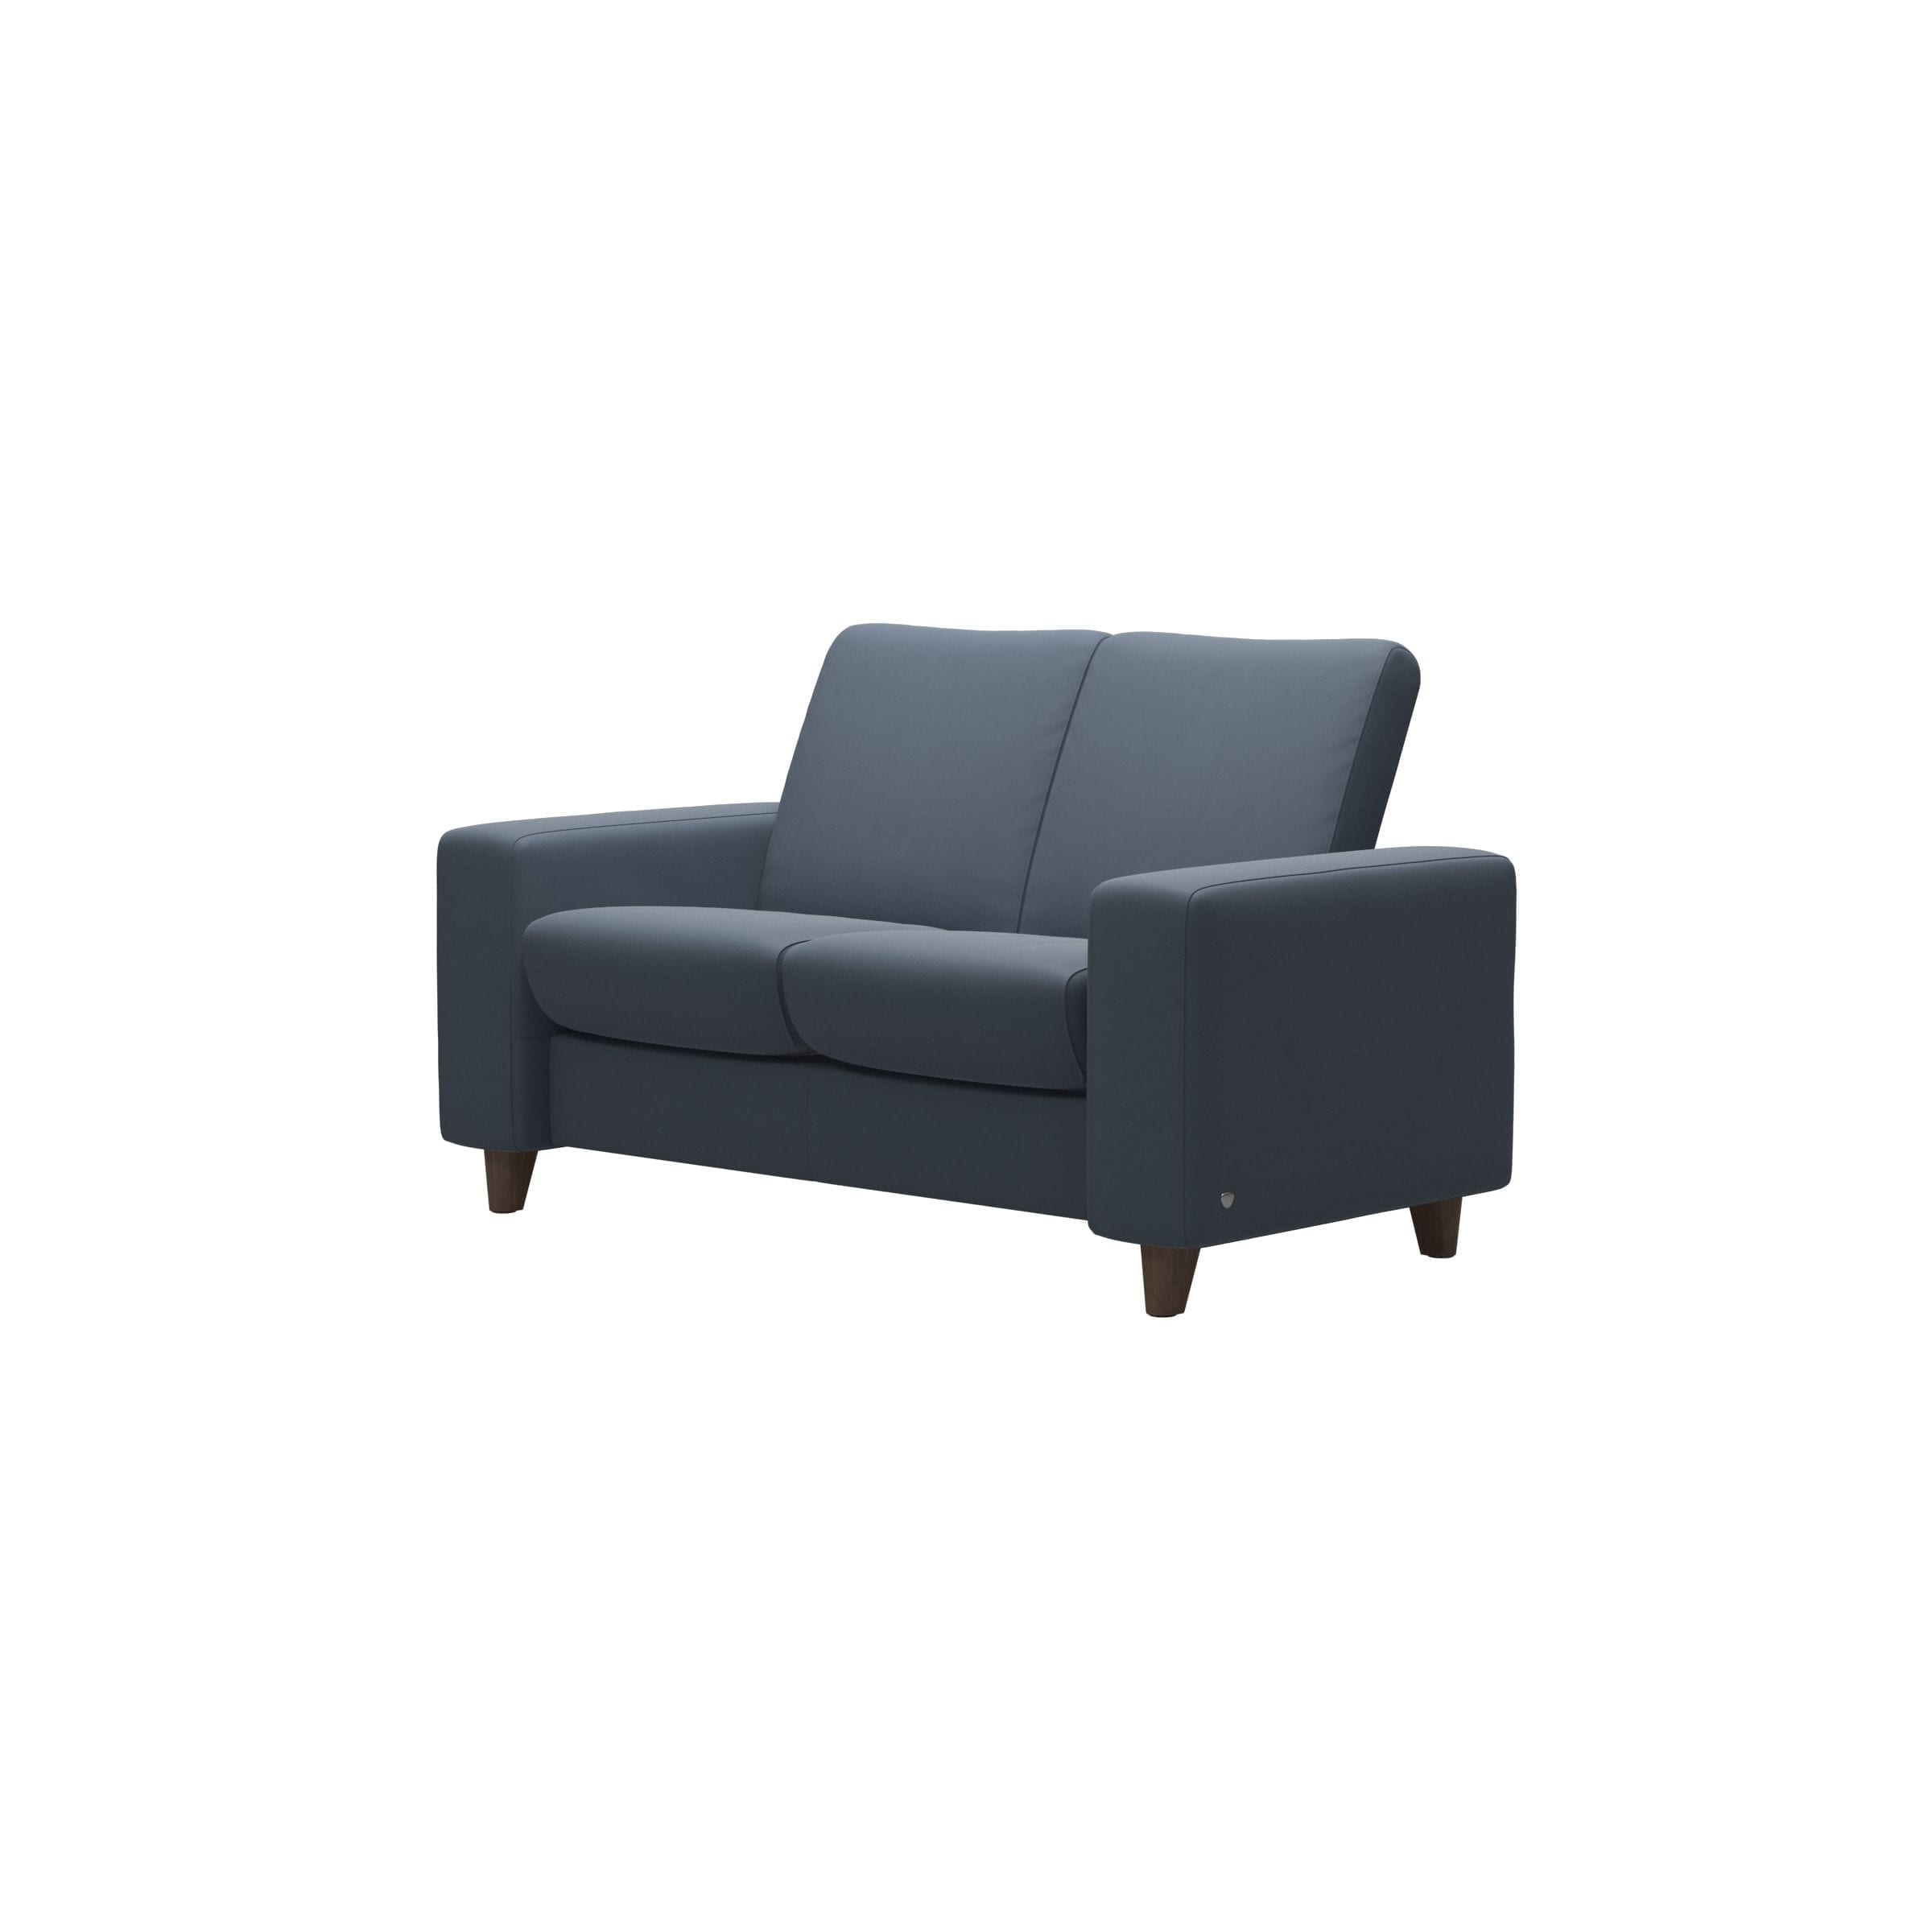 Arion 19 A20 Stressless Loveseat Low Back 3